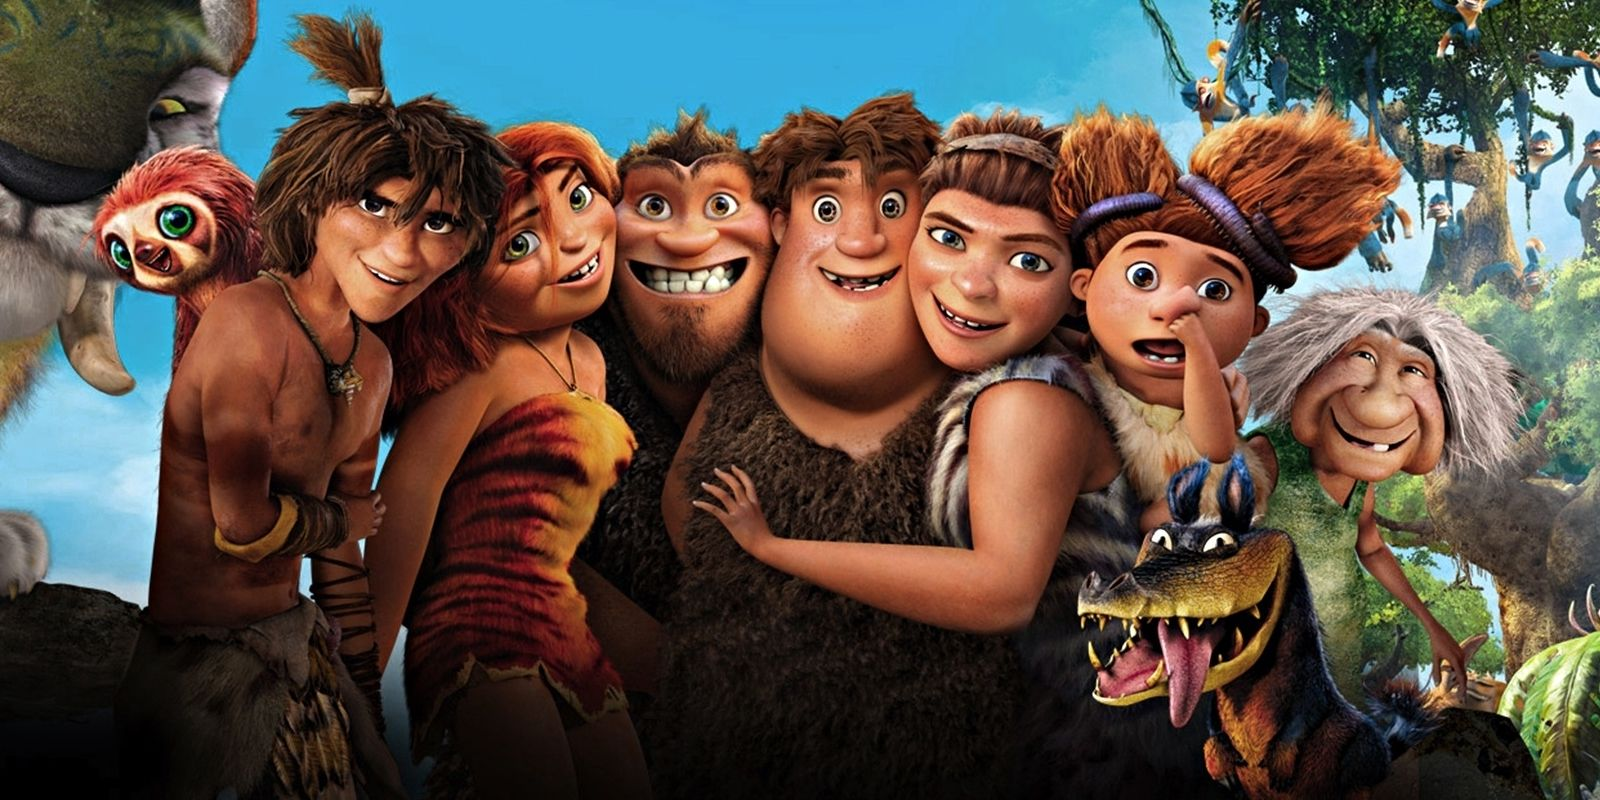 The Croods A New Age Release Date Now Shifted To November 2020 Finance Rewind